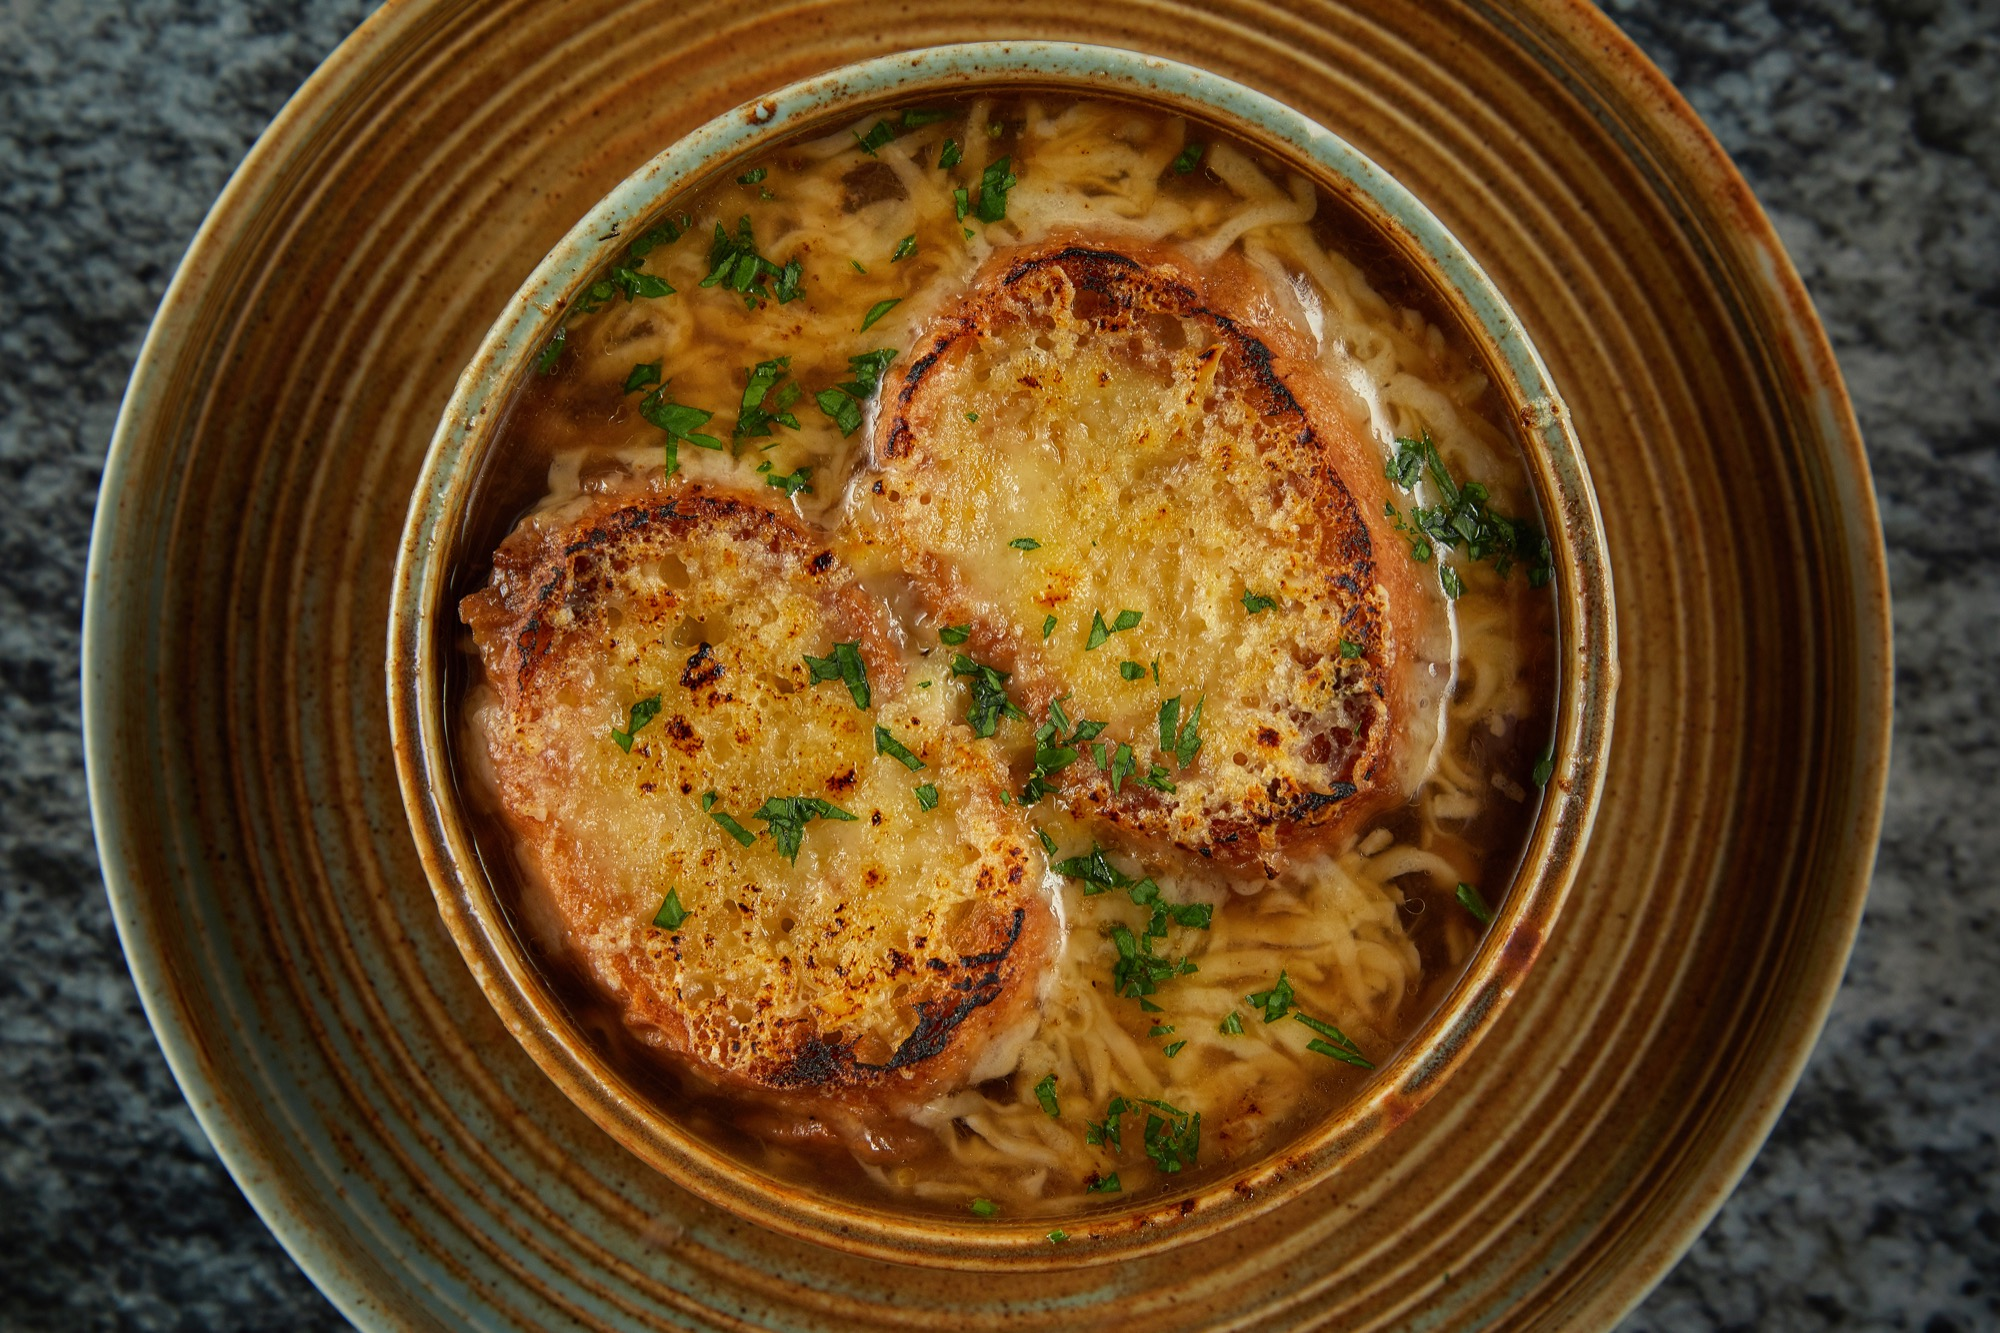 French_onion_soup_Ind_Restaurants.jpg